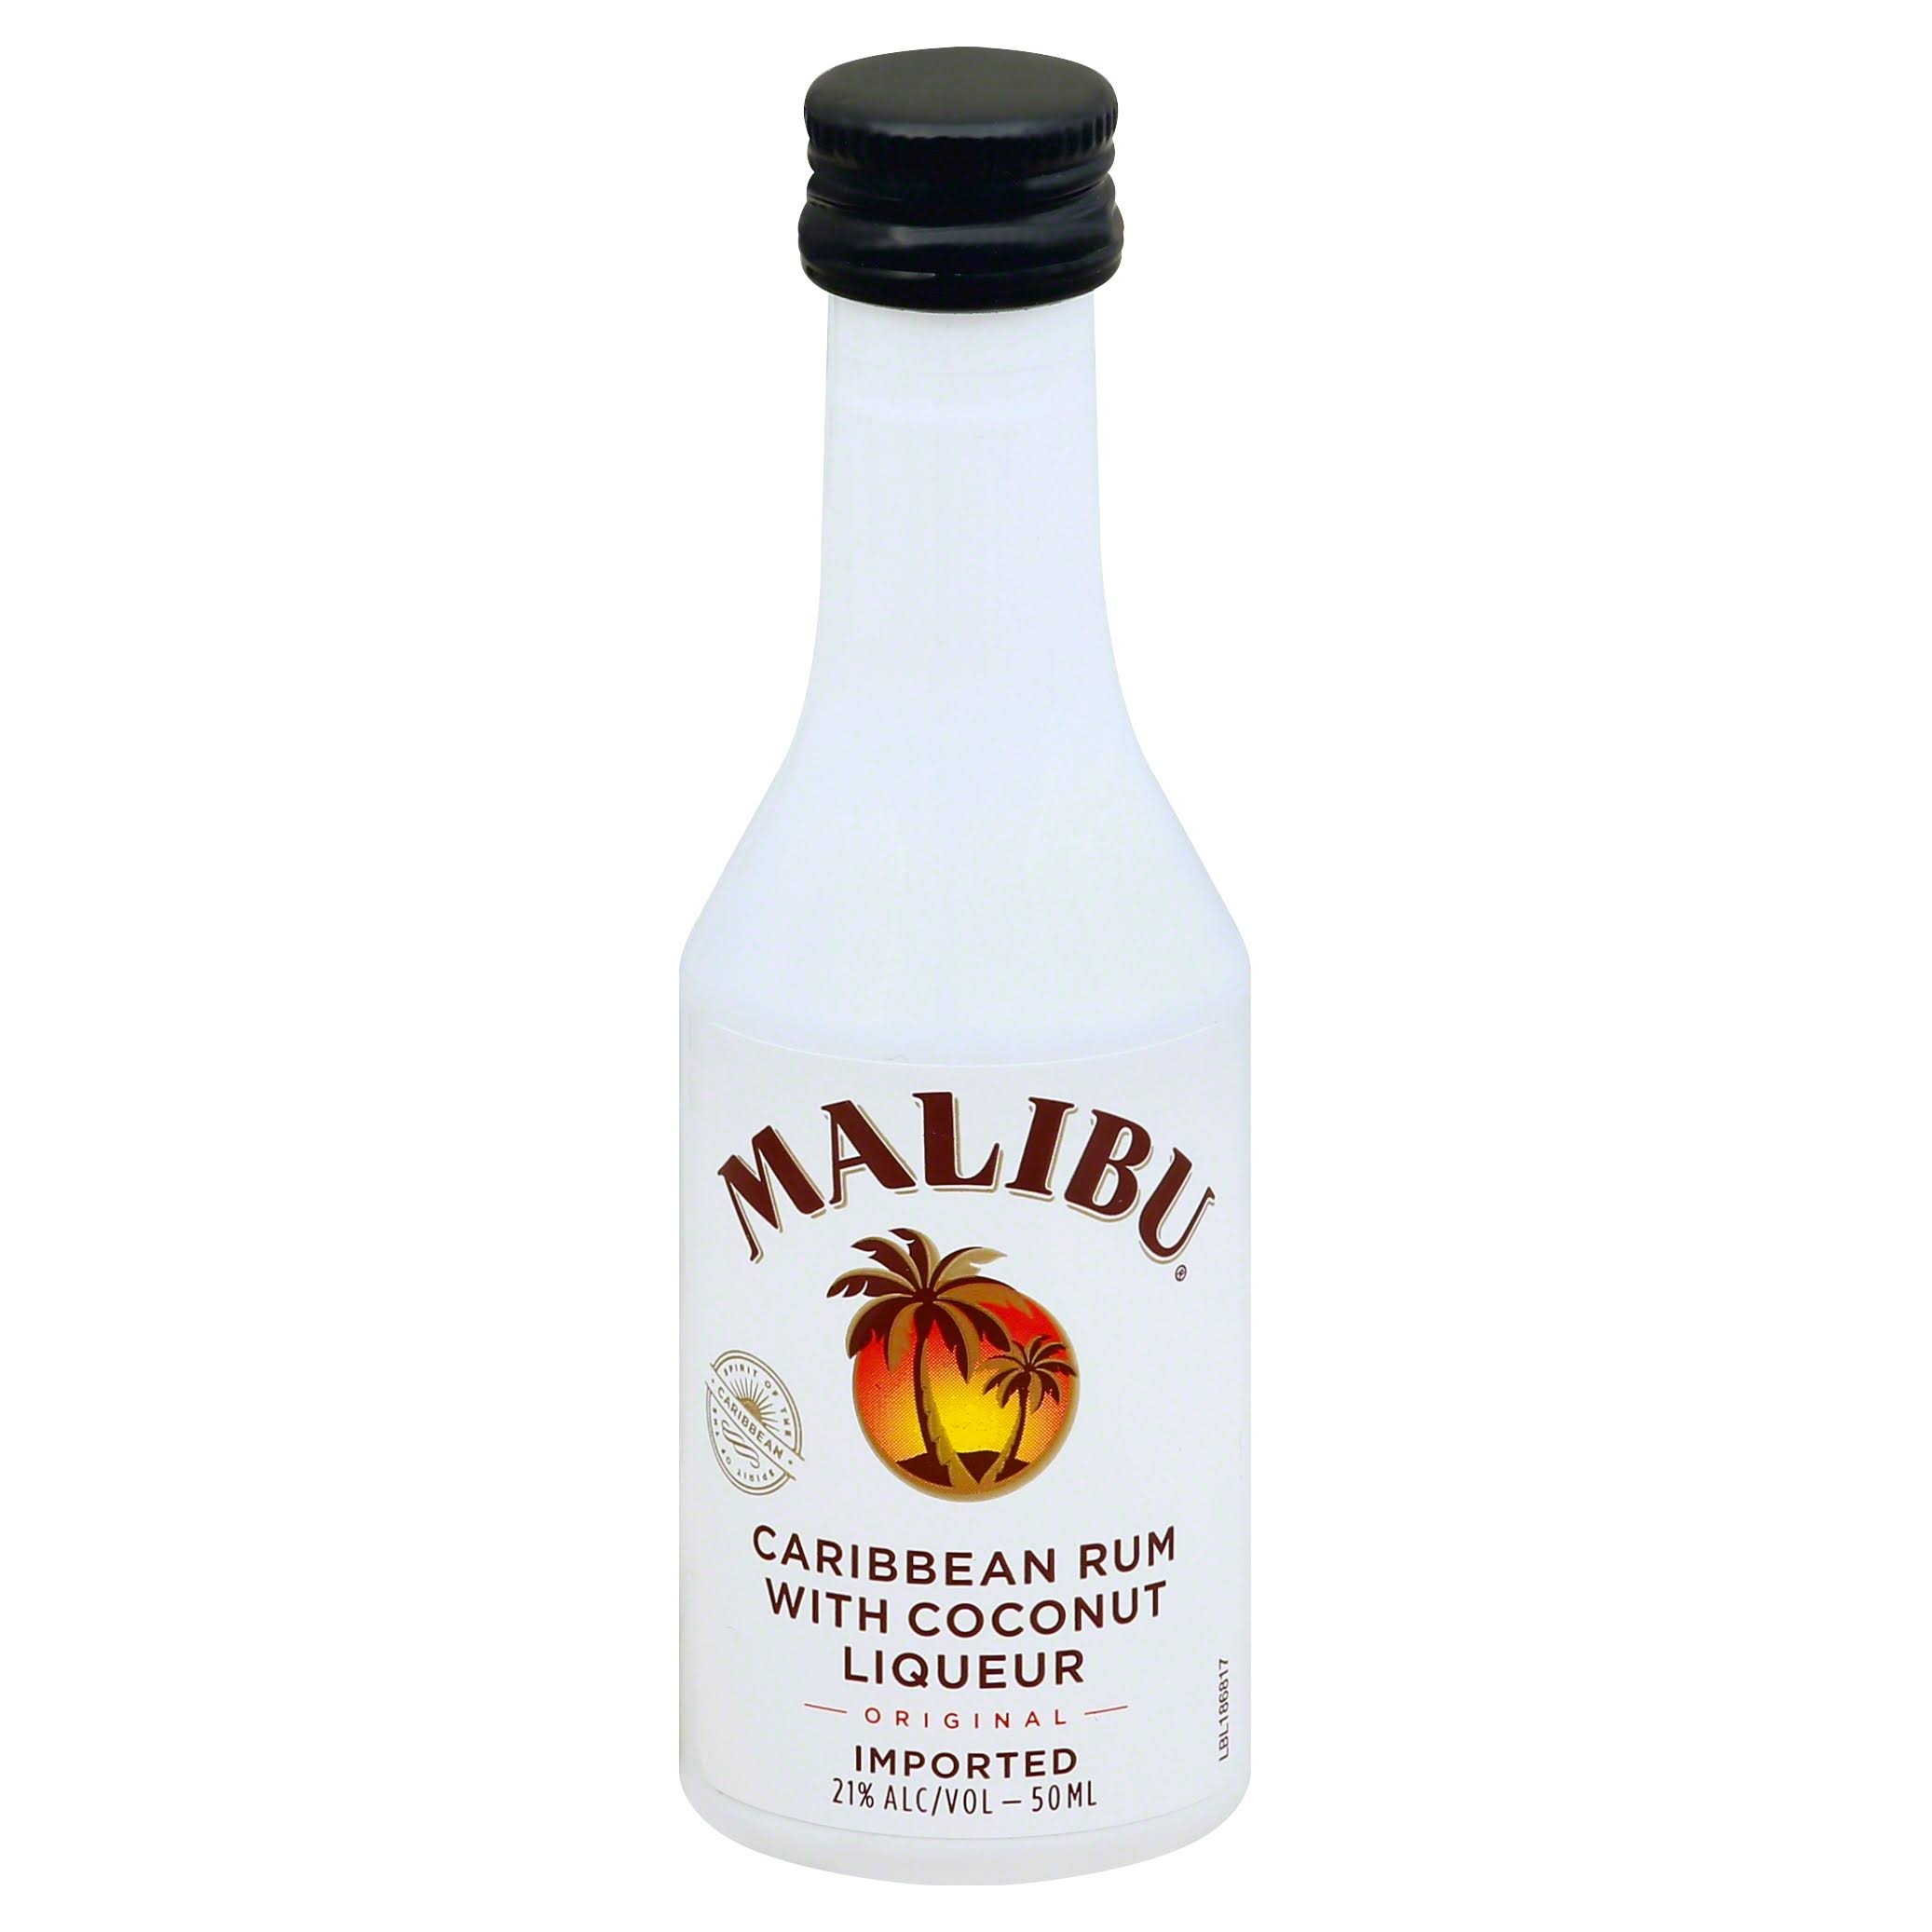 Malibu Rum, Caribbean, with Coconut Liqueur, Original - 50 ml